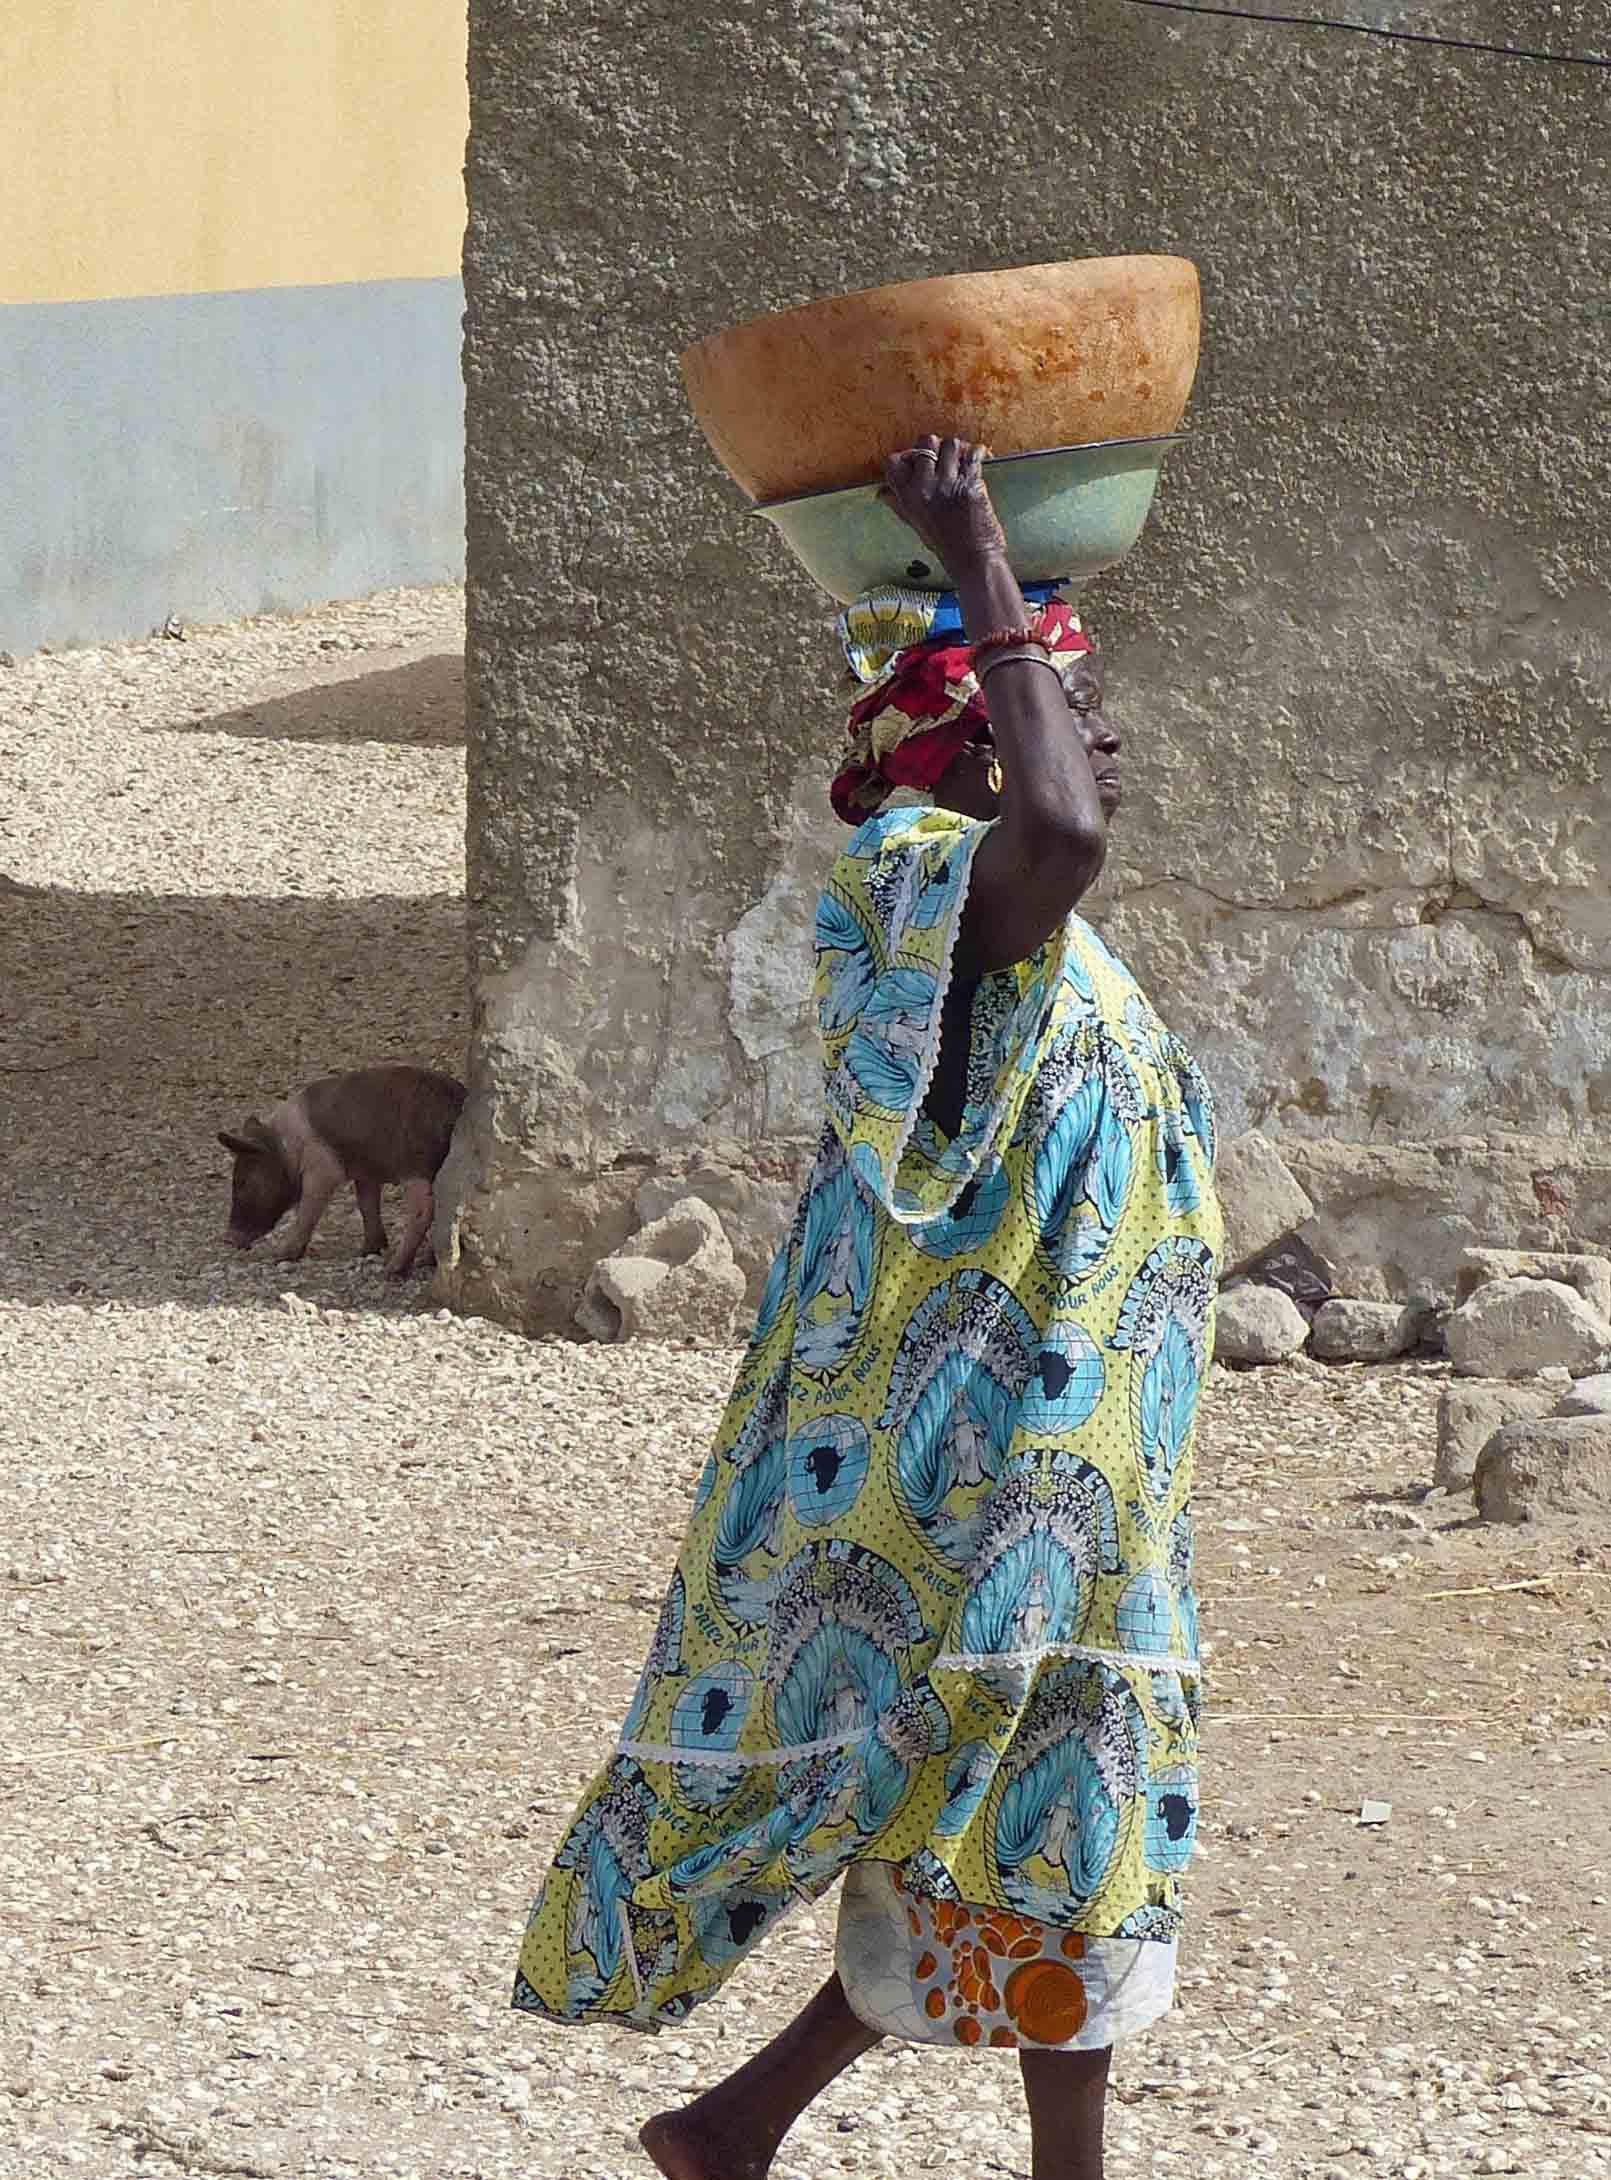 Woman carrying two bowls on her head